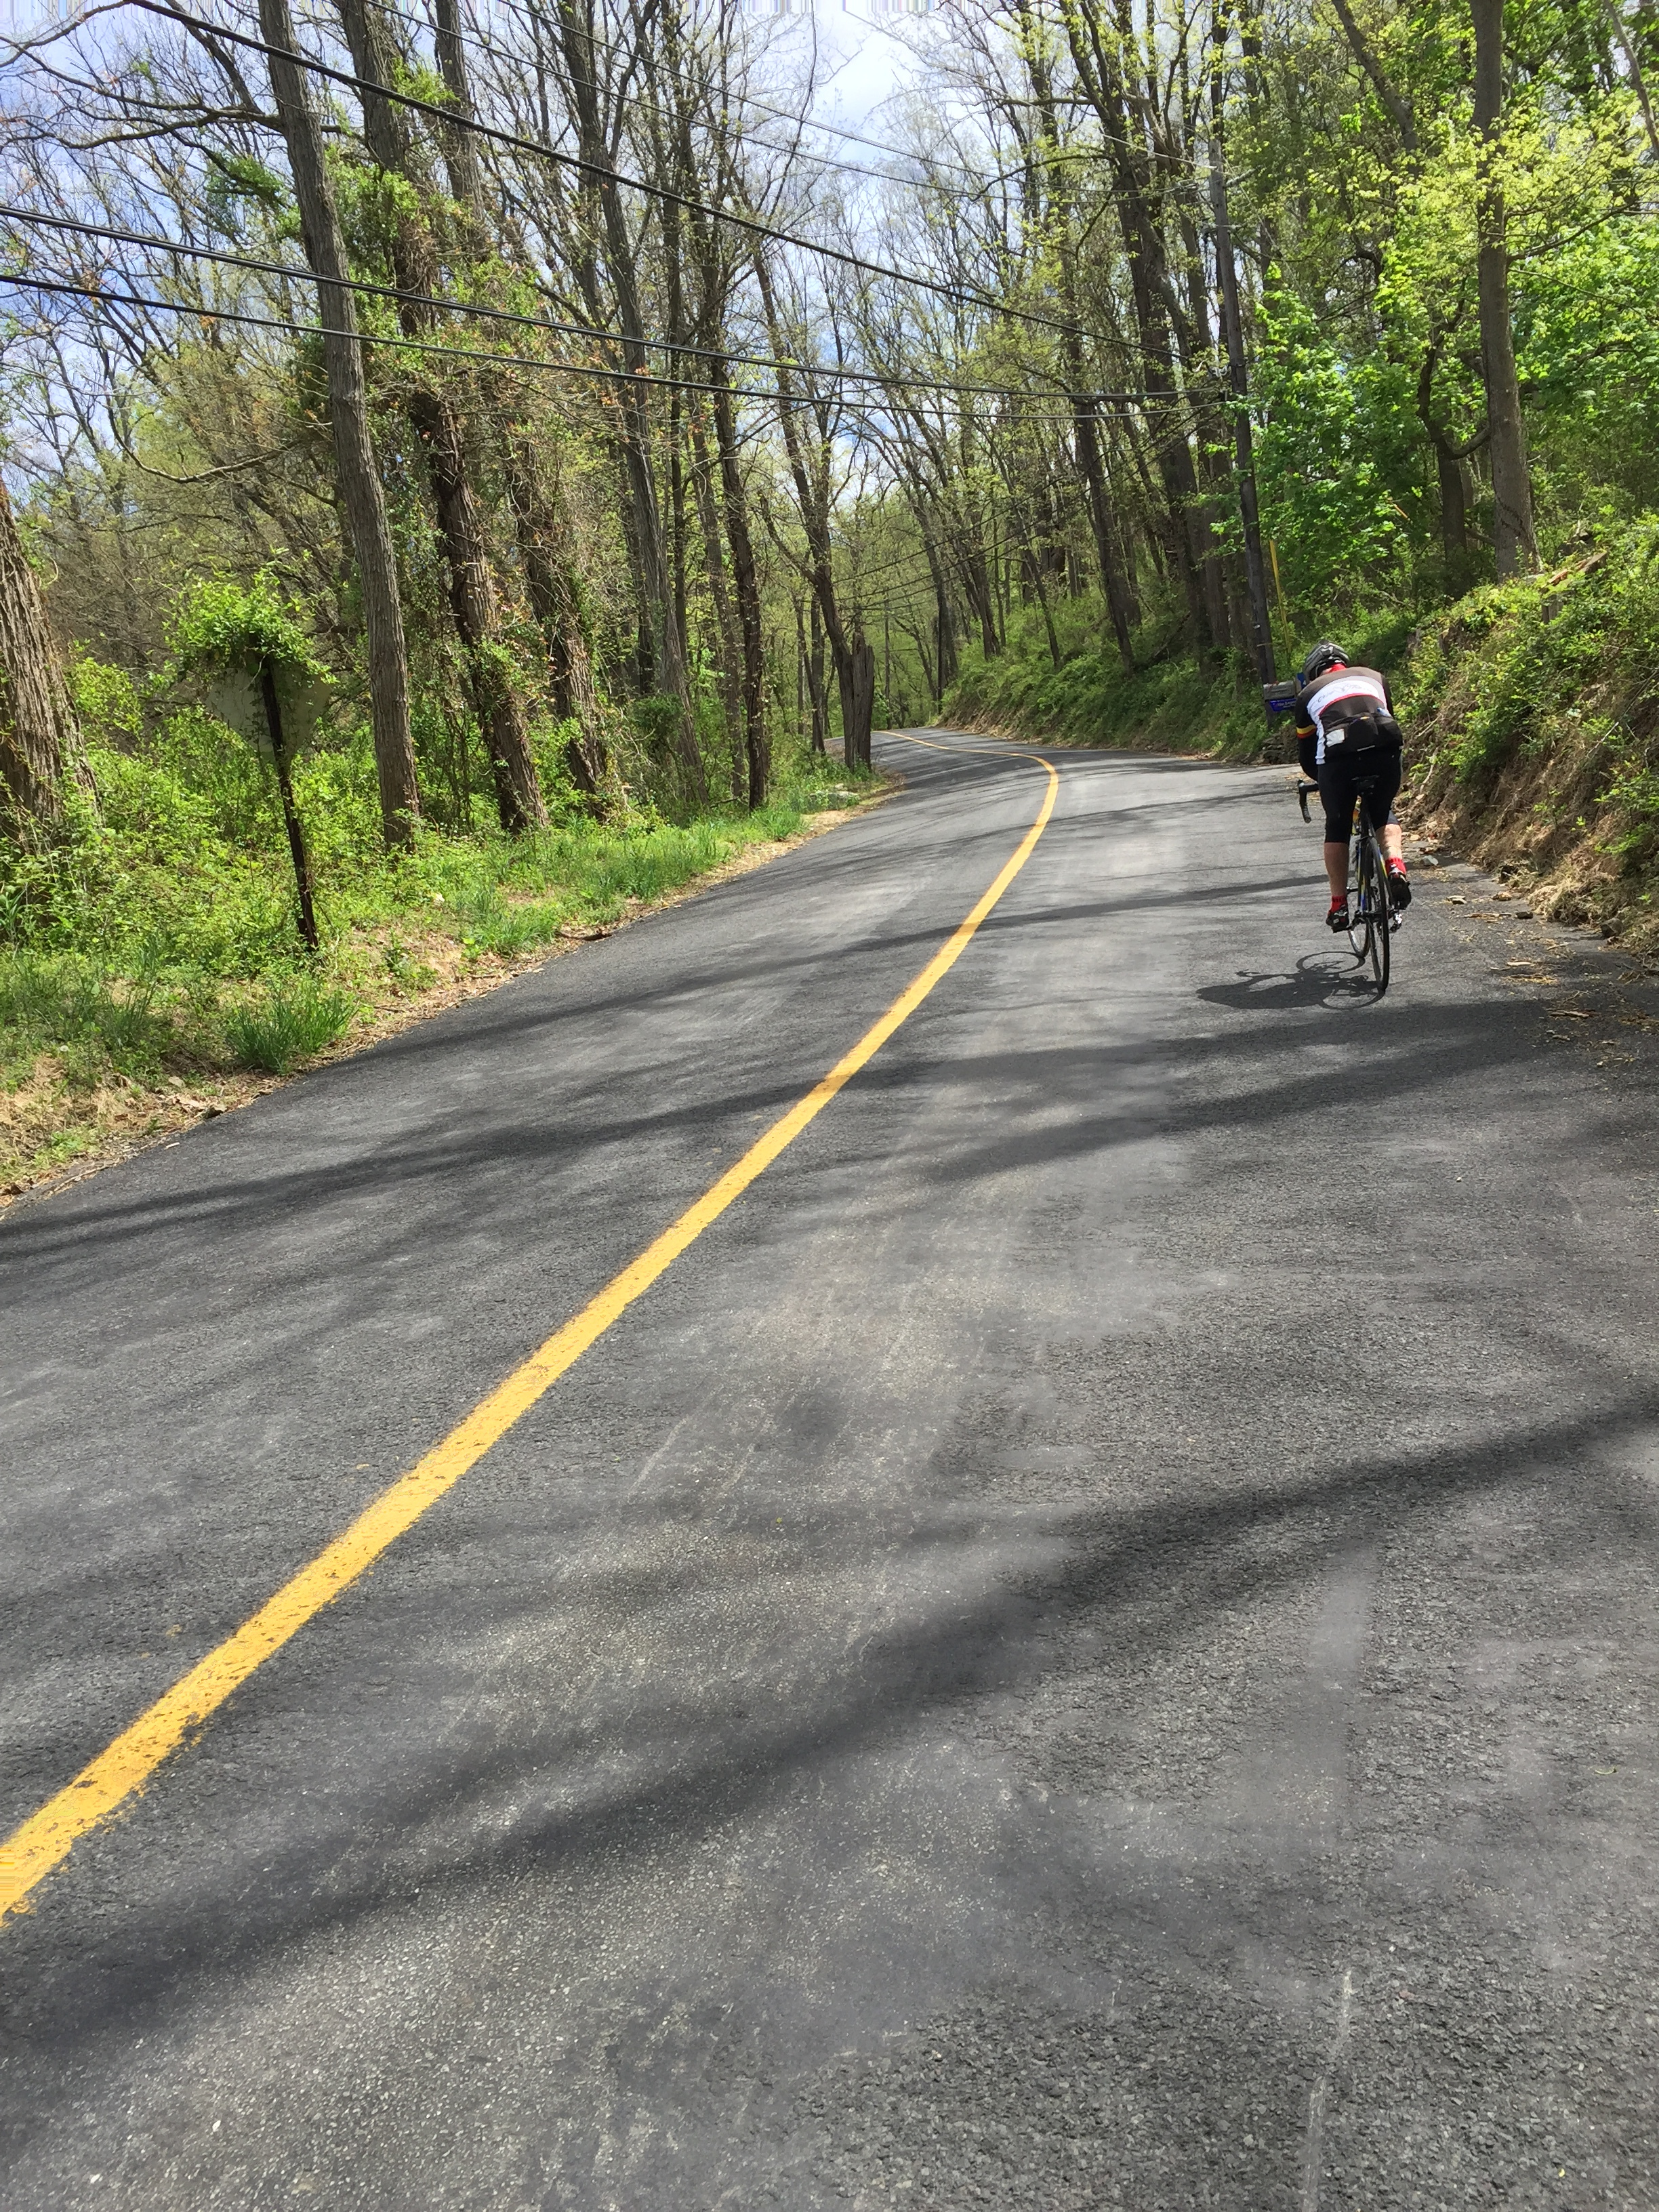 We caught this lone rider at the bottom of Adamic Hill Road only to have him pass us near the top.